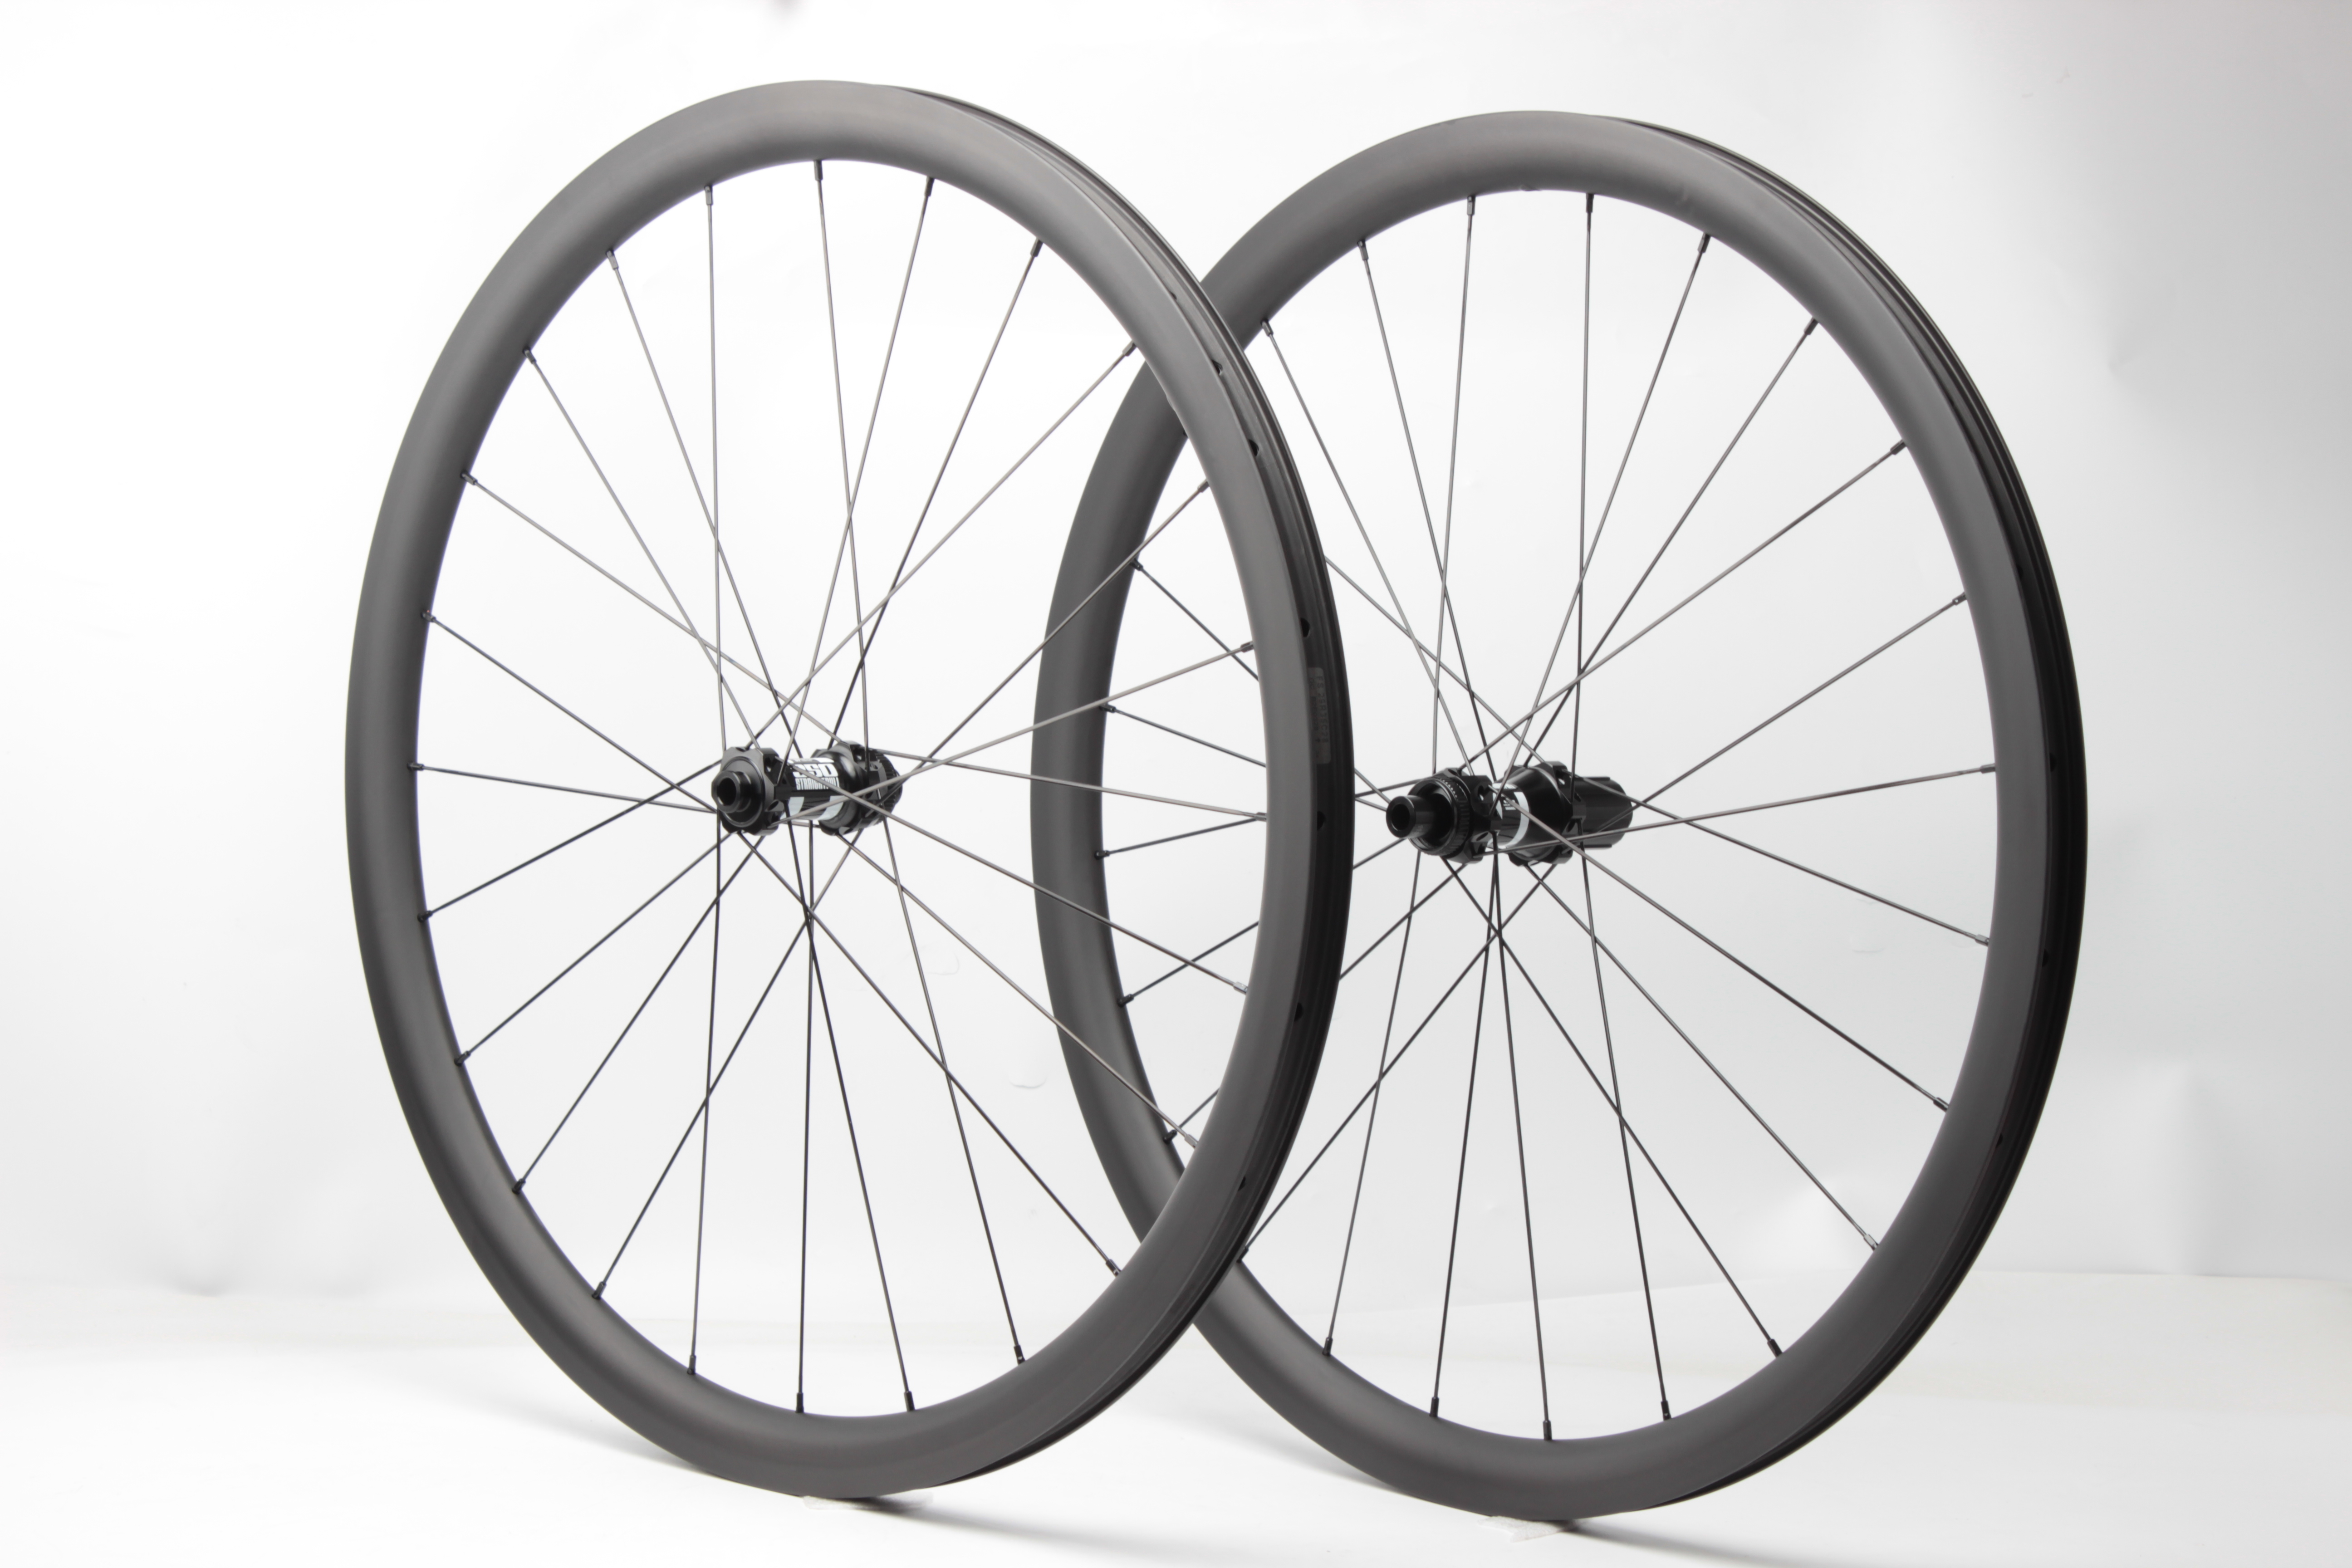 12mm Thru axle disc brake 35mm deep 28mm wide tubeless ready design 24H 28H carbon wheels